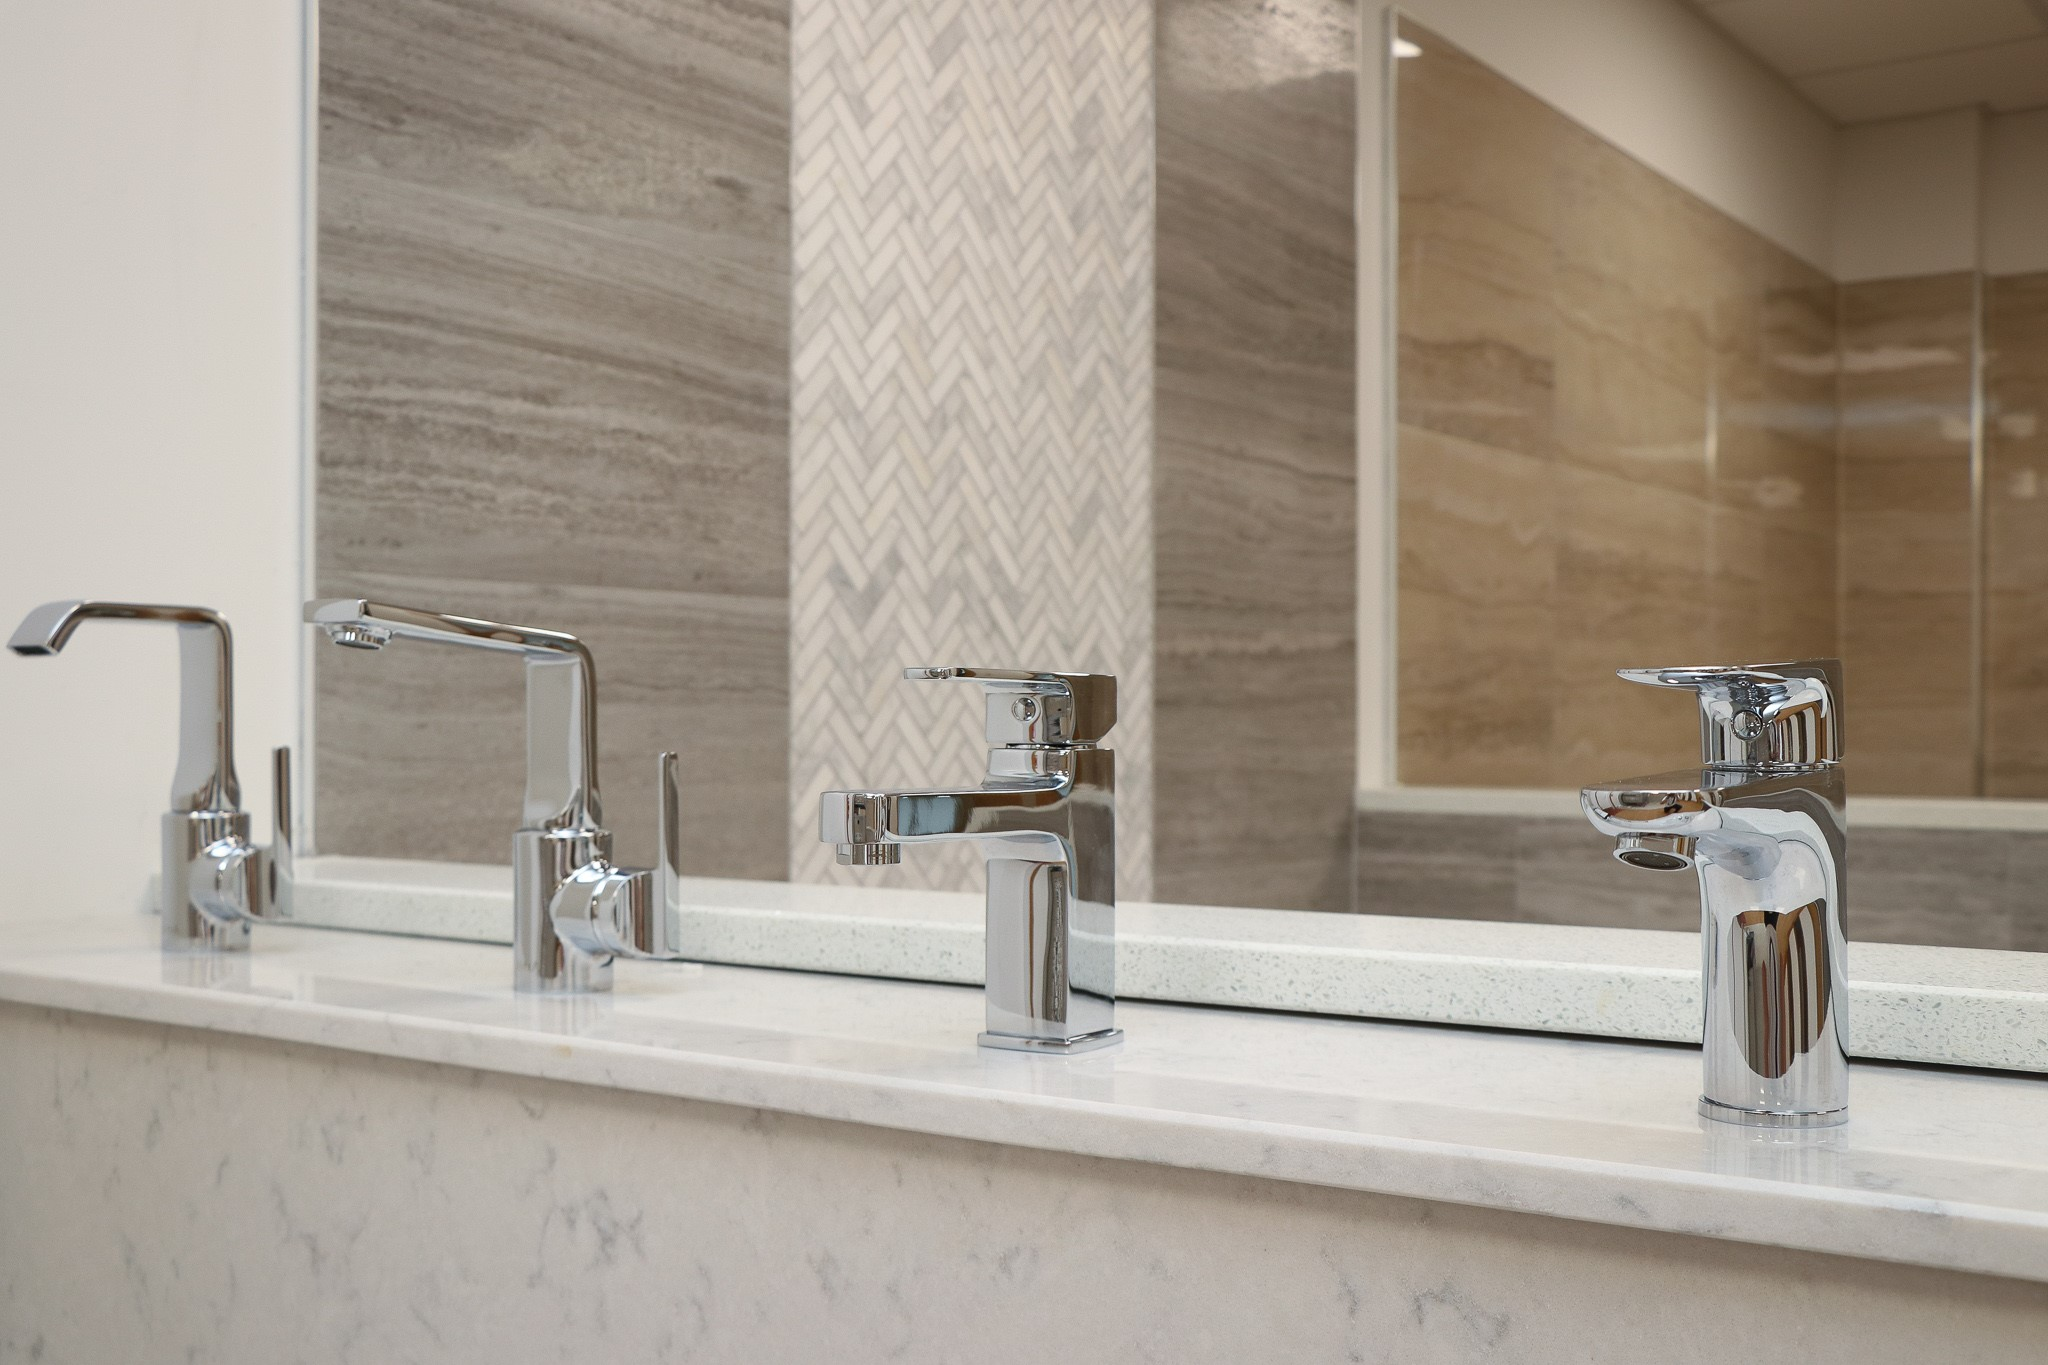 Sinks and taps for kitchens and bathrooms Worcestershire